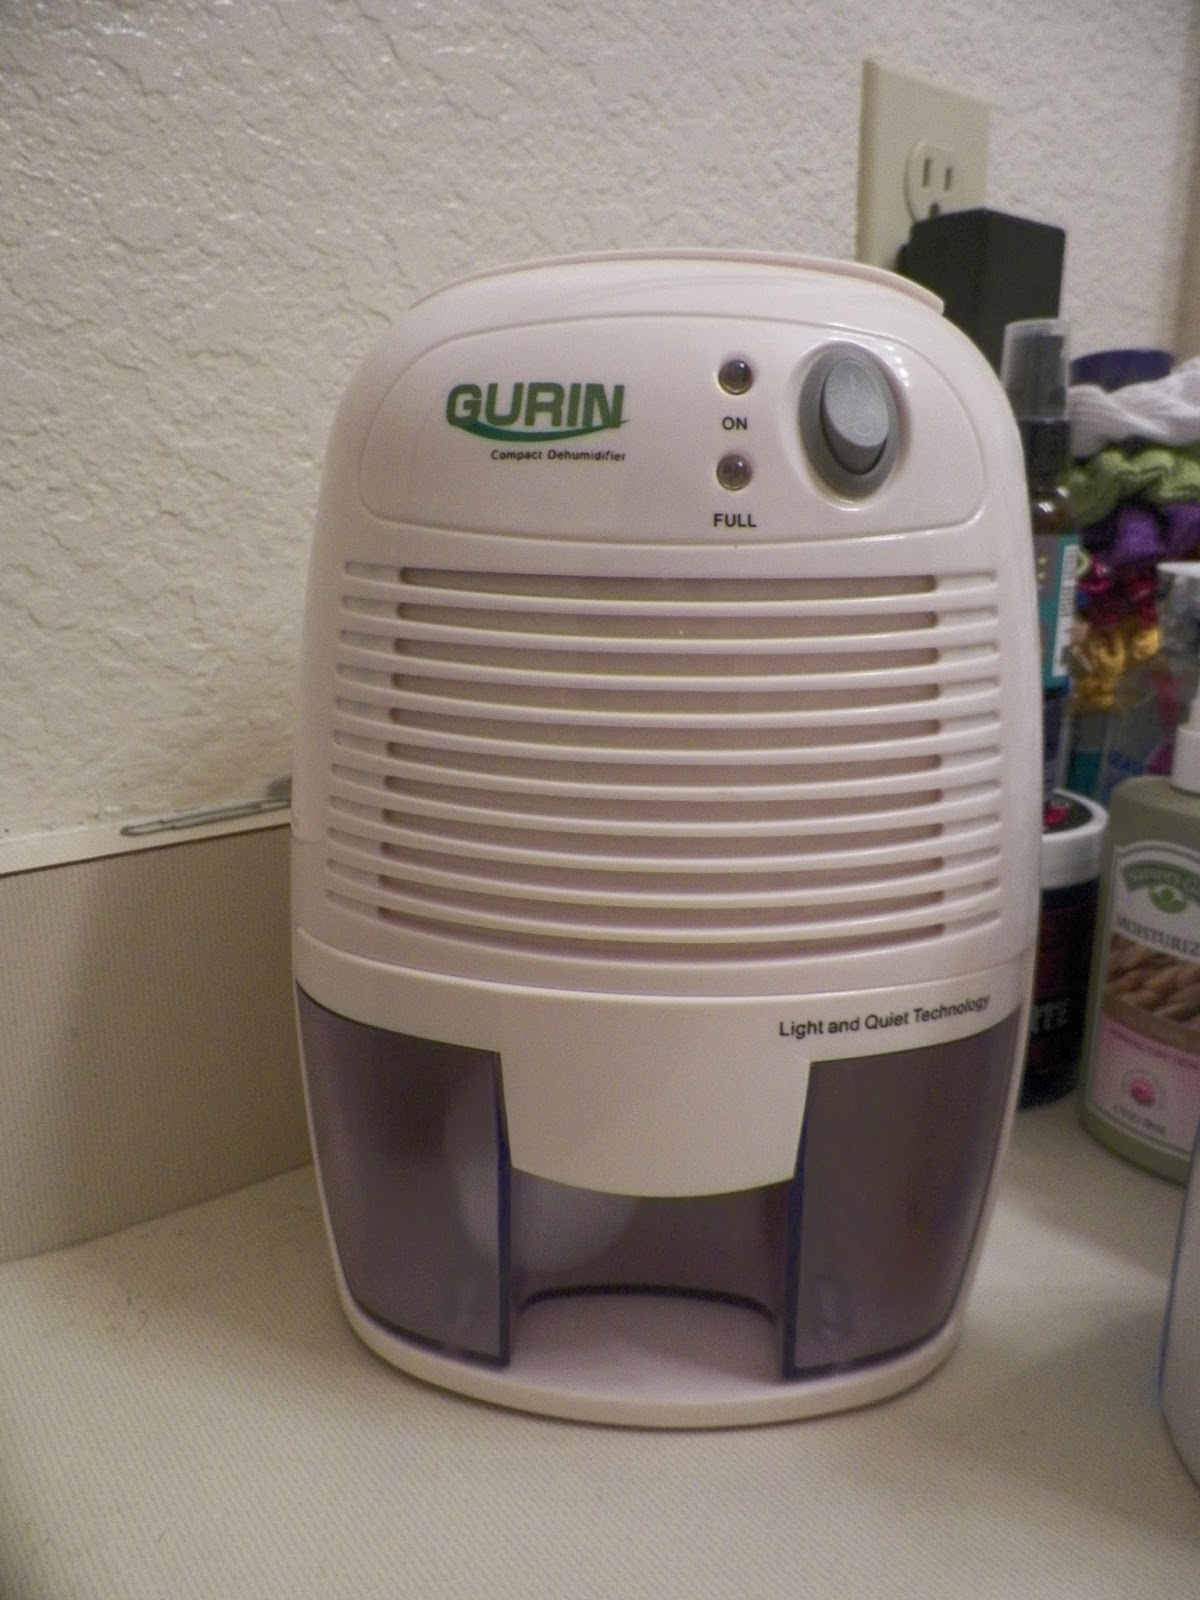 Mygreatfinds: Gurin Electric Compact Dehumidifier Review